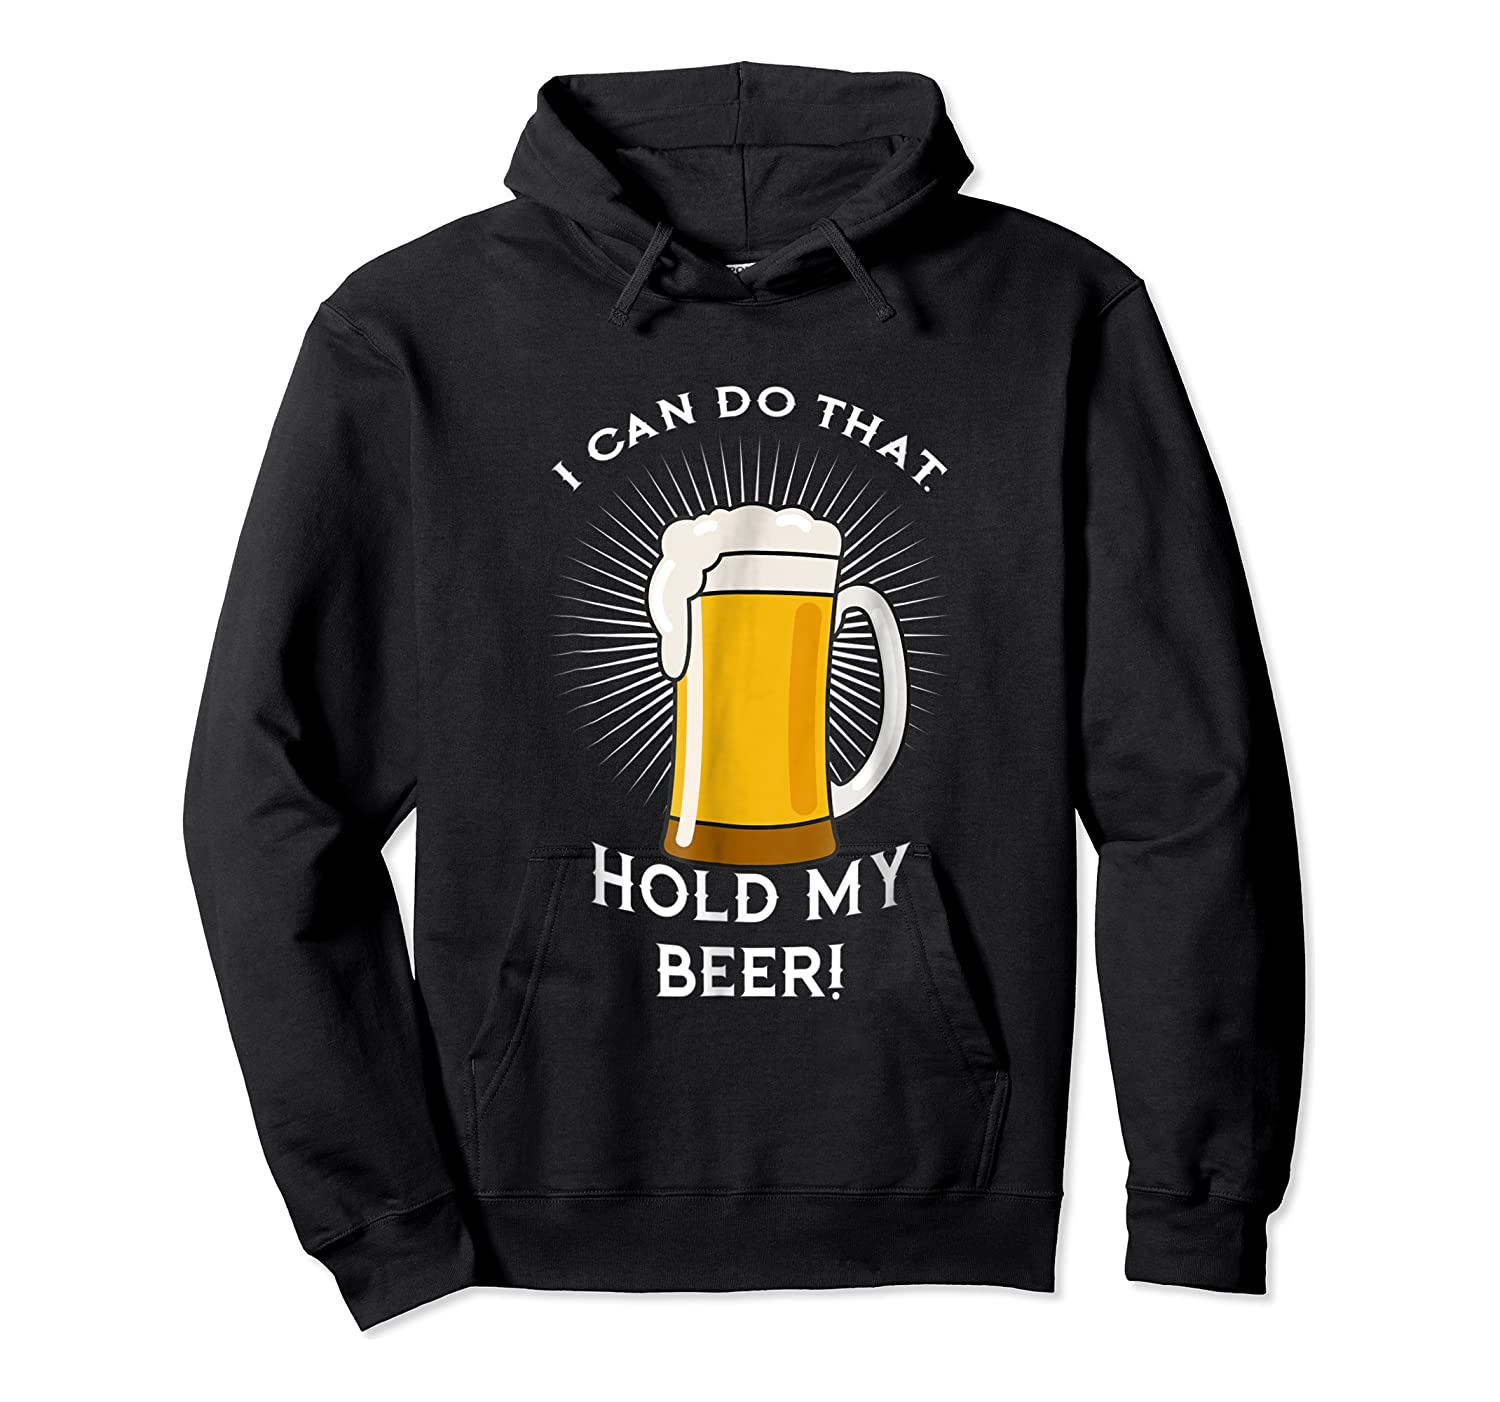 Hold My Beer Funny Humor Gag Gift T-shirt Unisex Pullover Hoodie